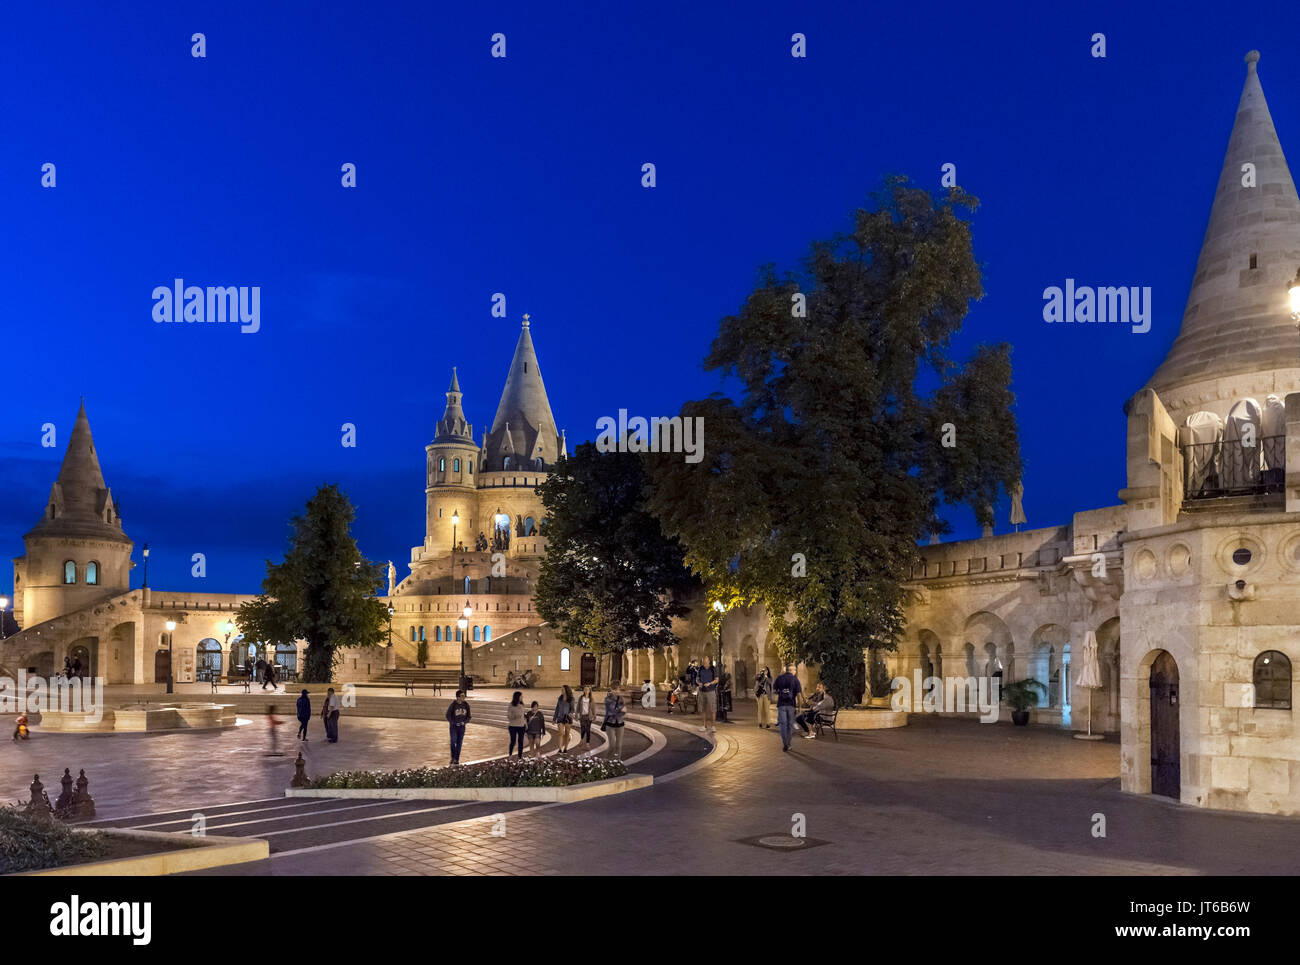 Fishermen's Bastion at night, Buda Castle district, Castle Hill, Budapest, Hungary - Stock Image